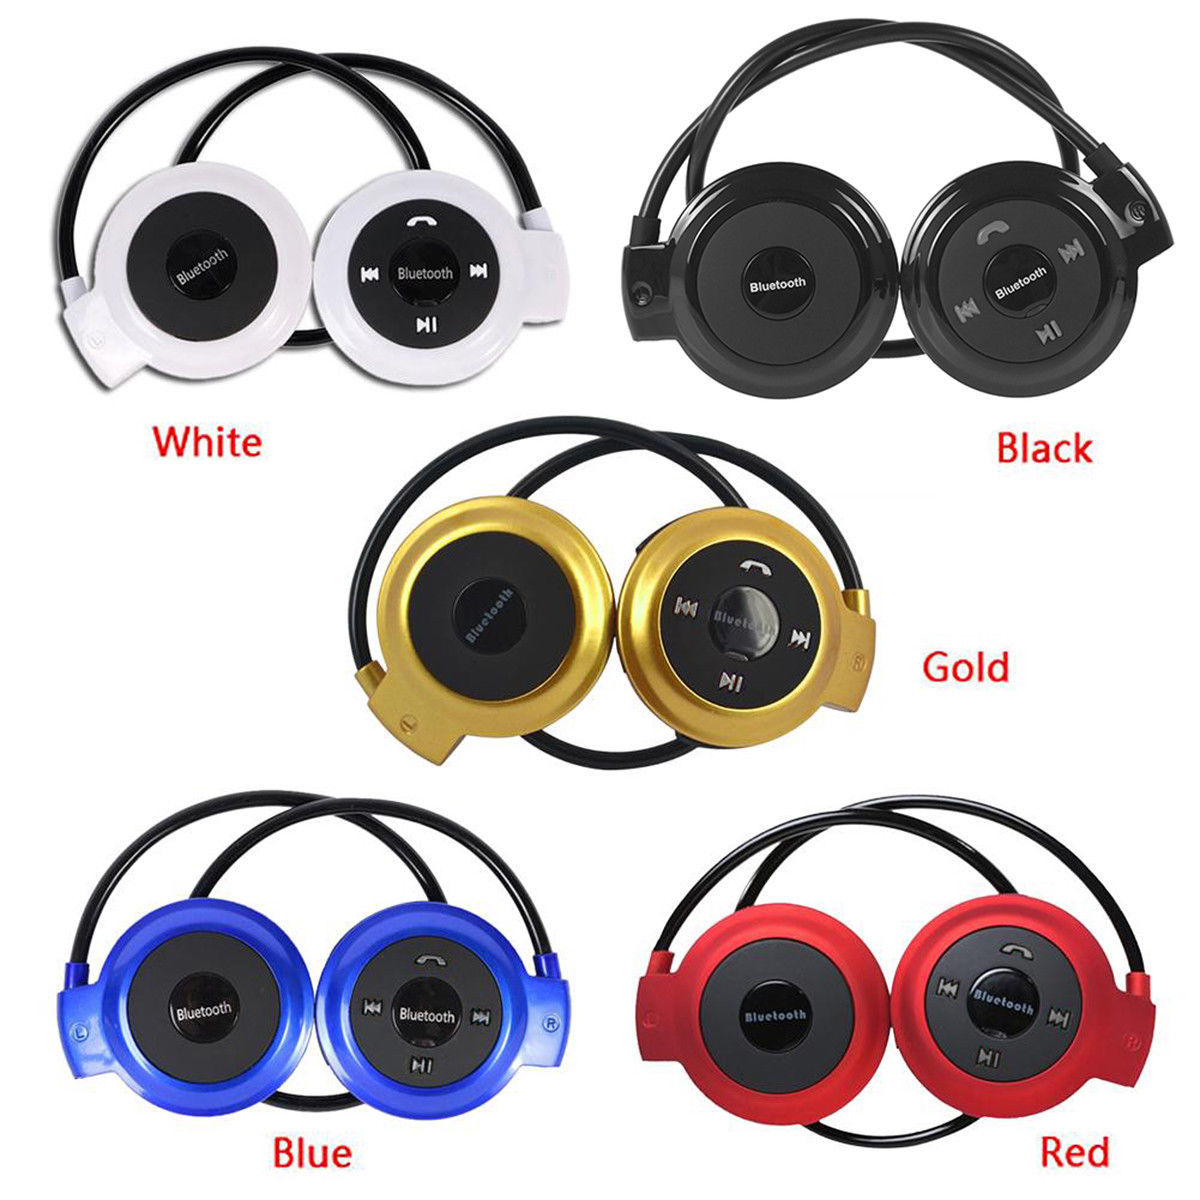 dfa9dfd8f73 MINI503 Sport Wireless Bluetooth Headphones Stereo Earphones Mp3 Music Player  Headset Earpiece Micro SD Card Slot FM Radio Mic